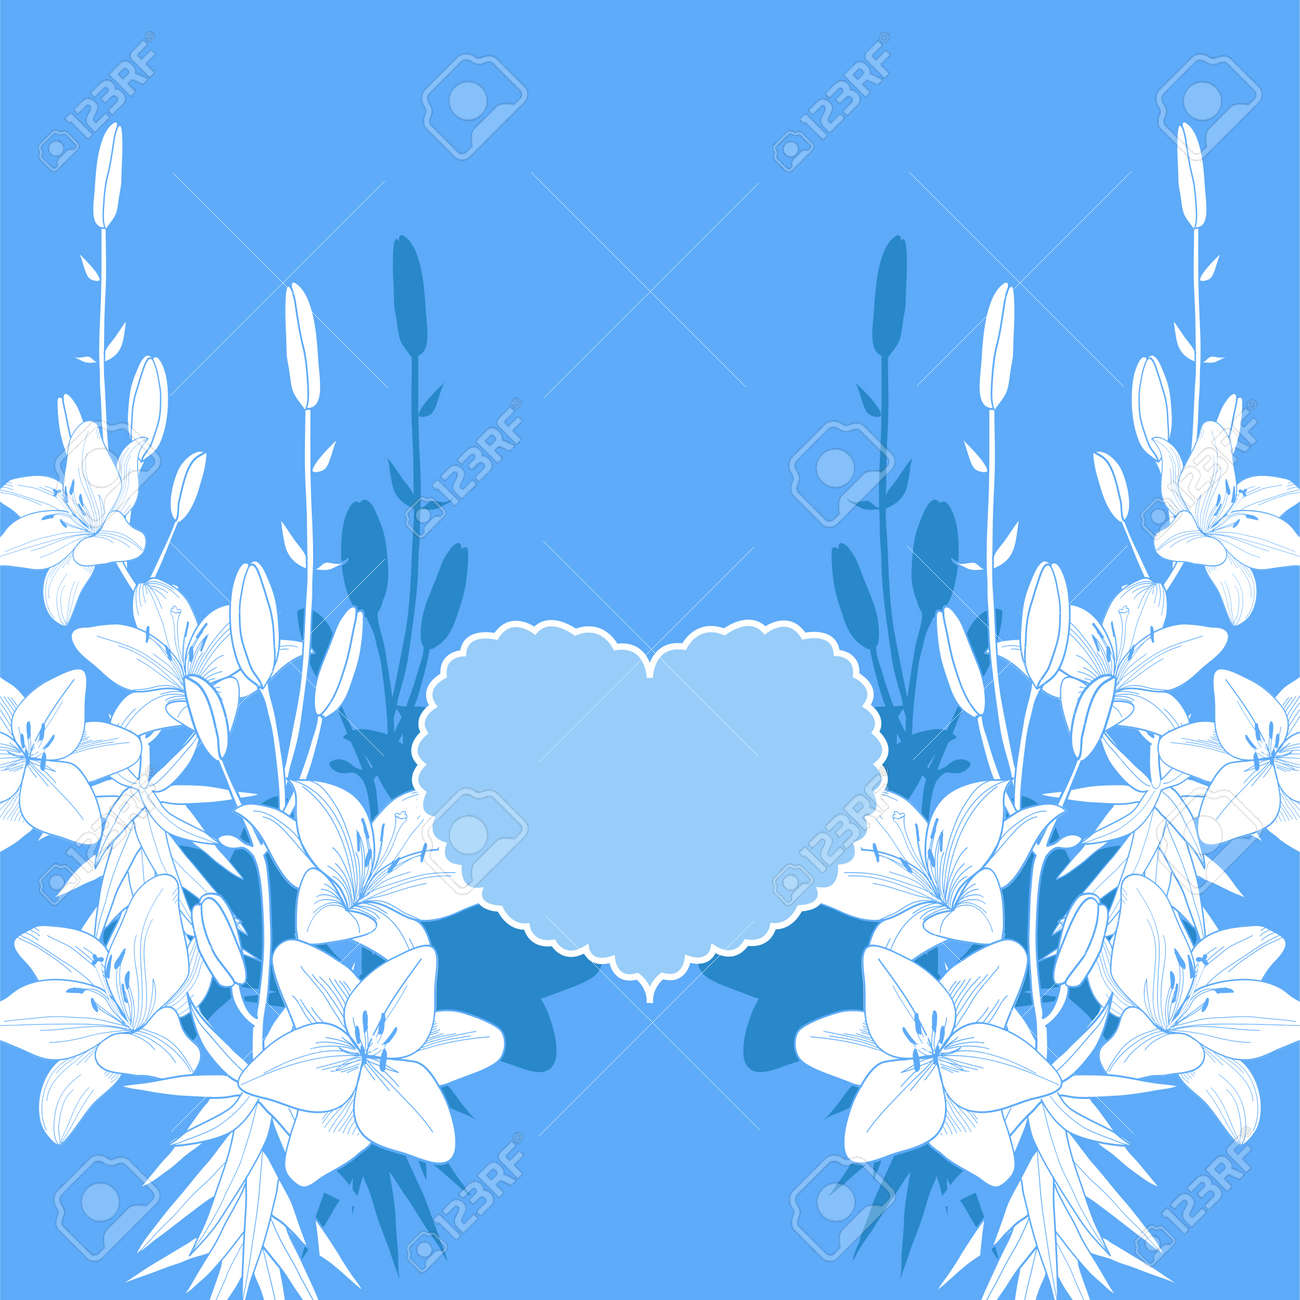 Blue And White Lily Vector Love Card Wedding Invitation Template Royalty Free Cliparts Vectors And Stock Illustration Image 79181922